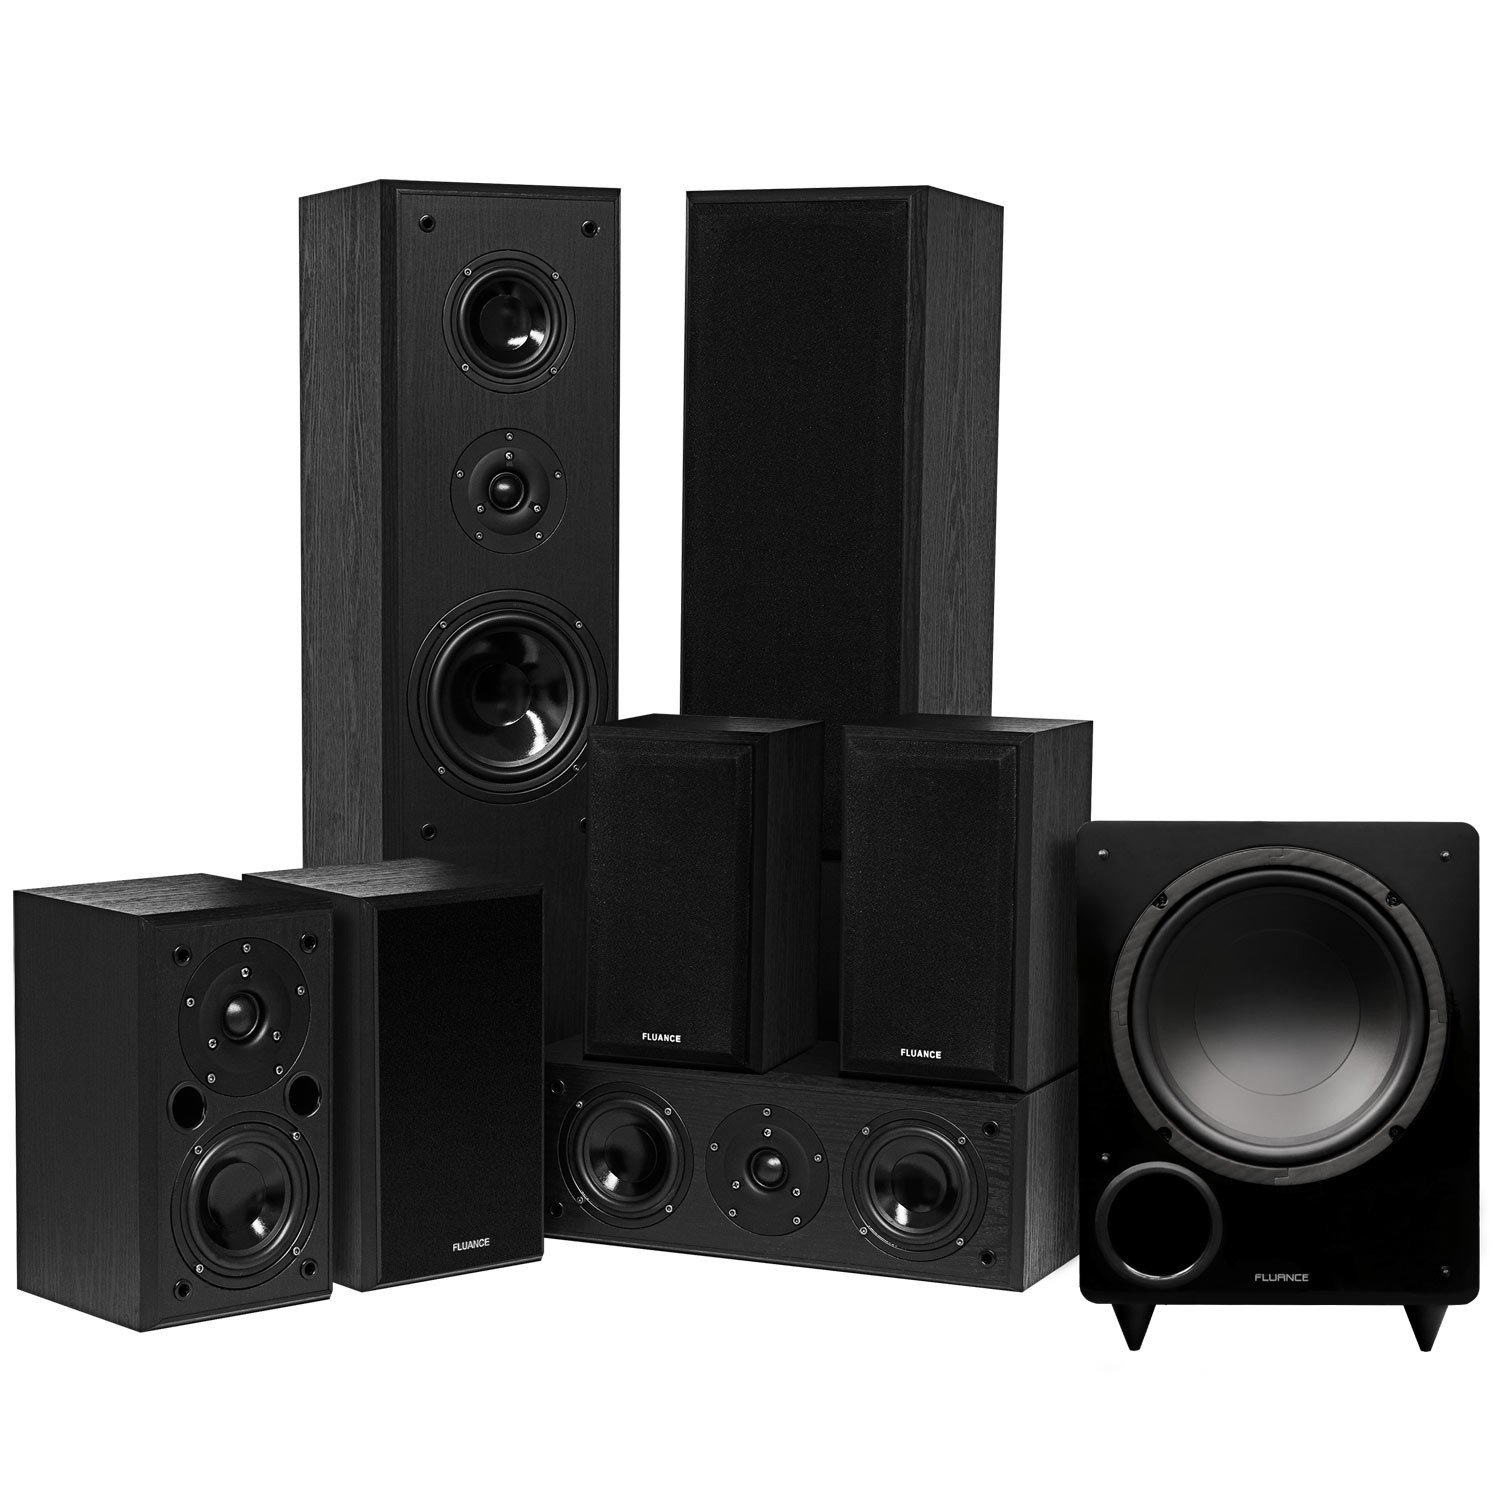 Classic Series Surround Sound Home Theater 7.1 Channel Speaker System